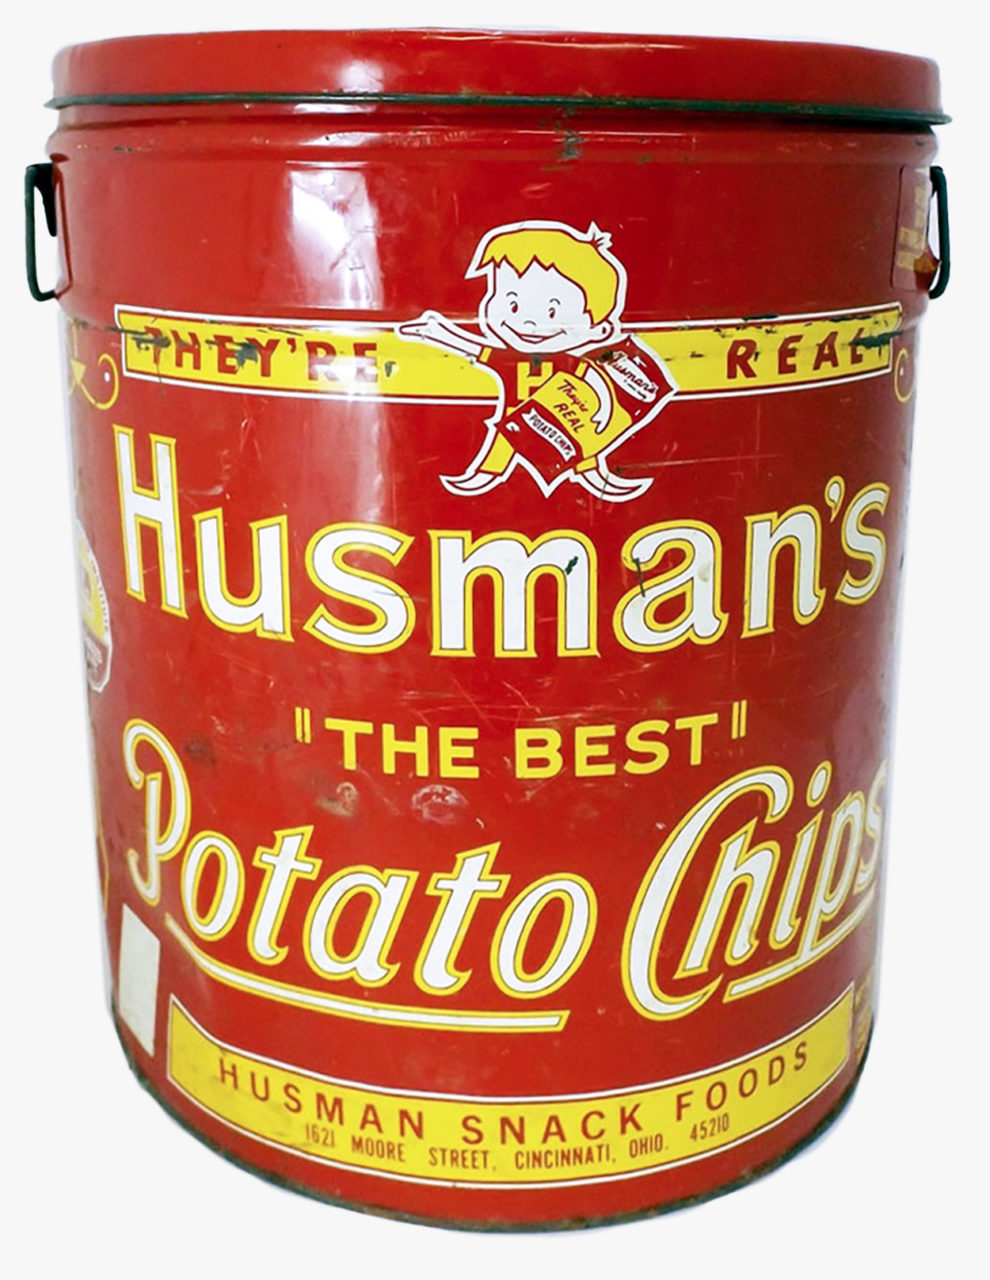 A very large can of potato chips by the Husman brand